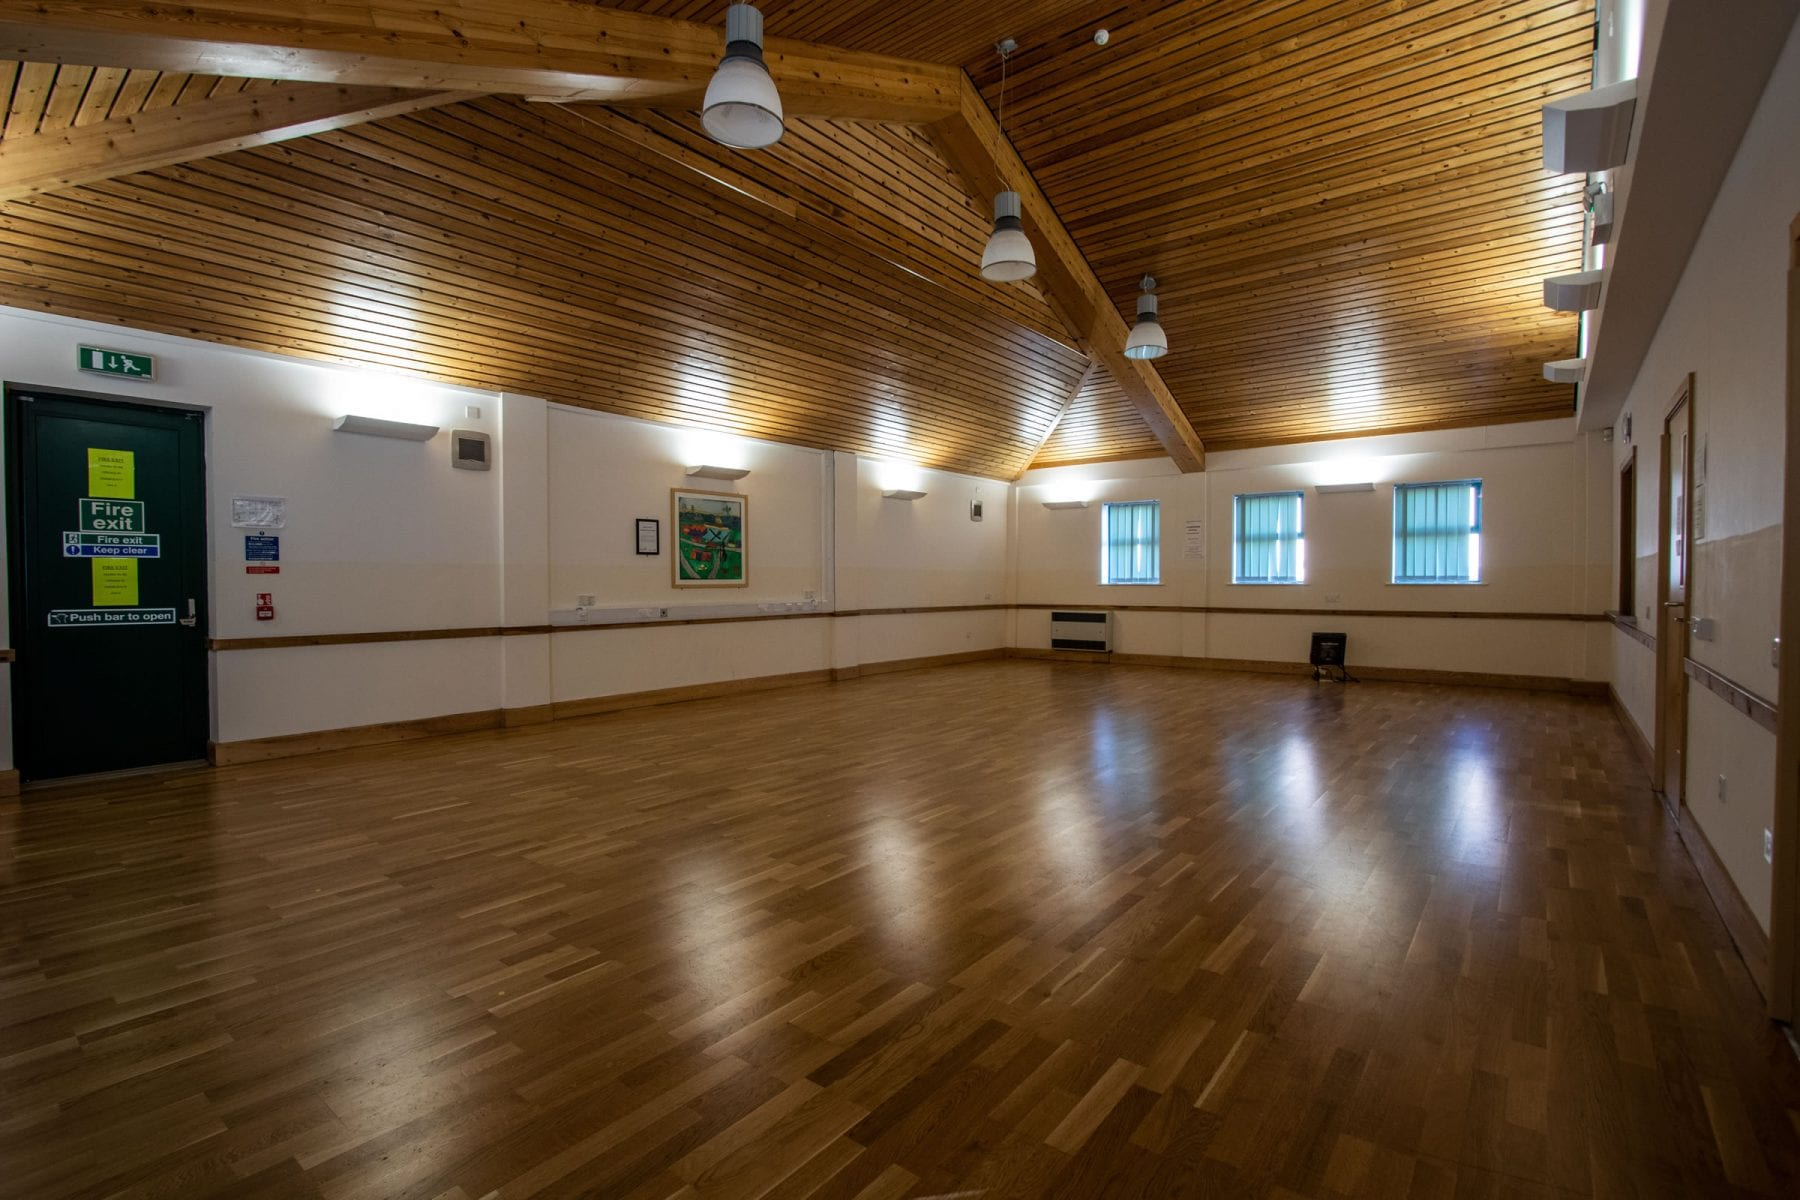 Petuaria Community Centre Main Hall interior